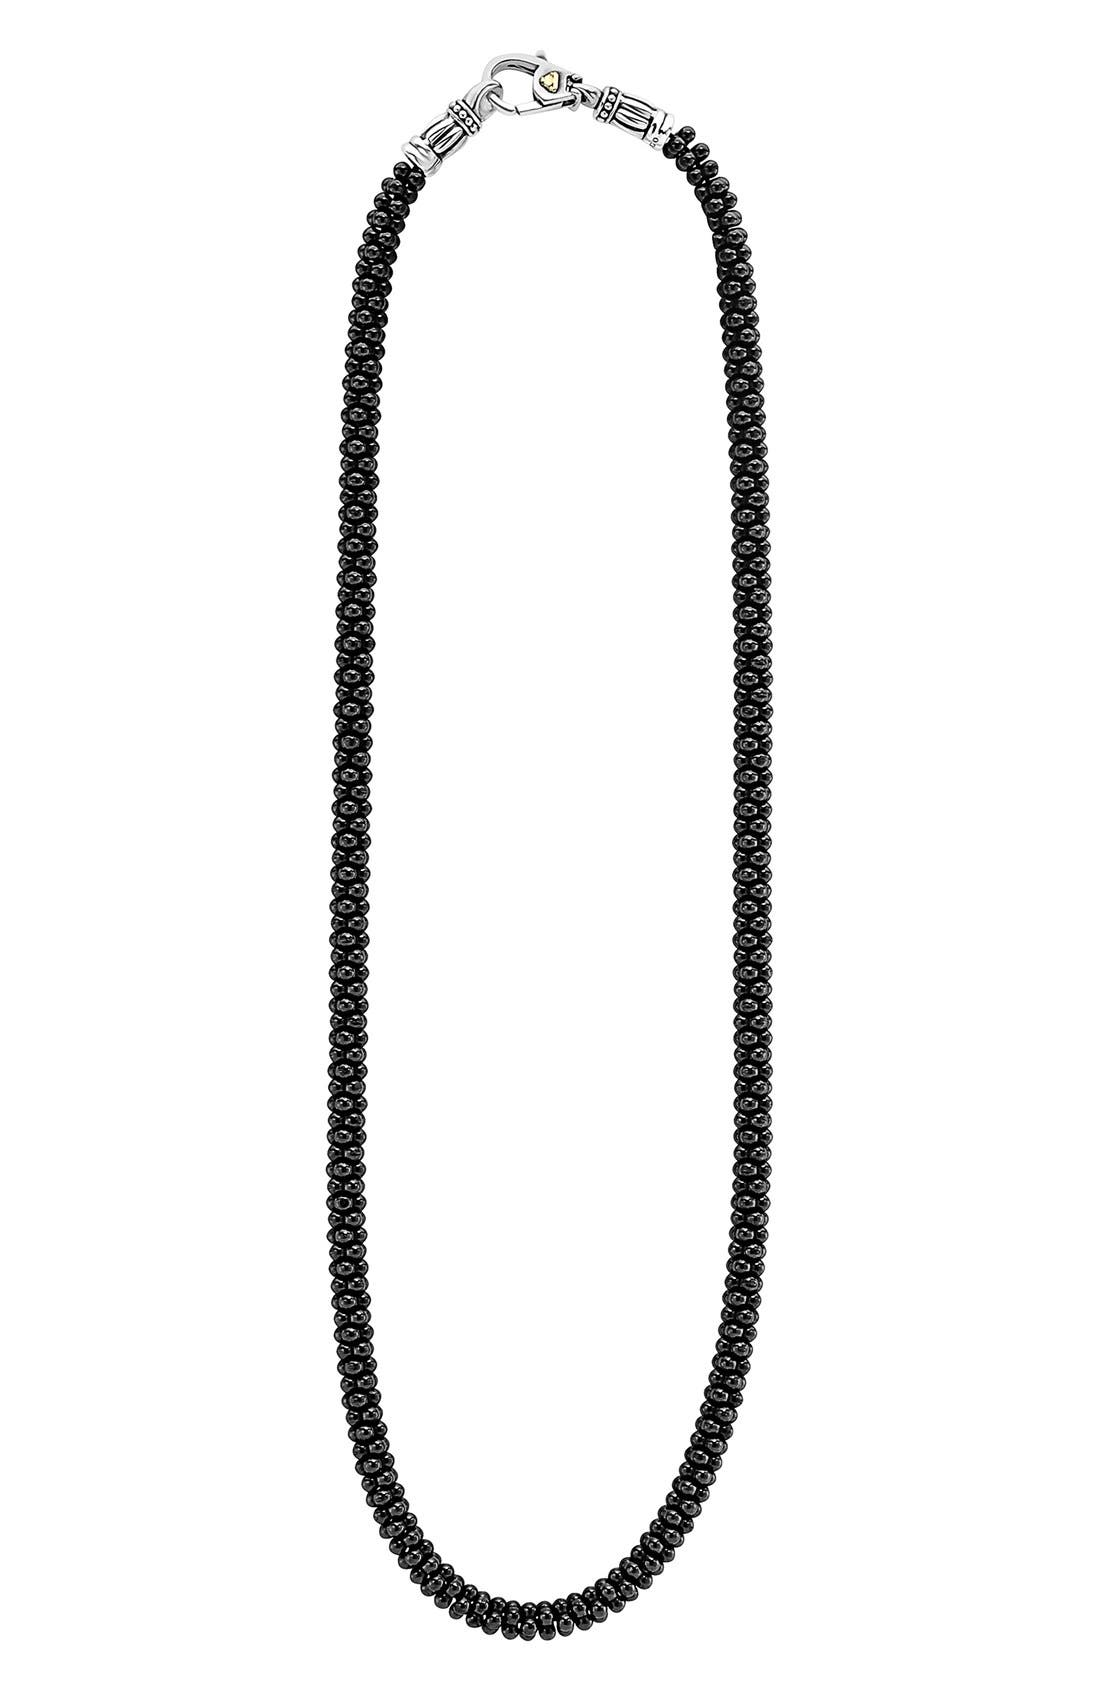 'Black Caviar' 5mm Beaded Necklace,                         Main,                         color, Black Caviar